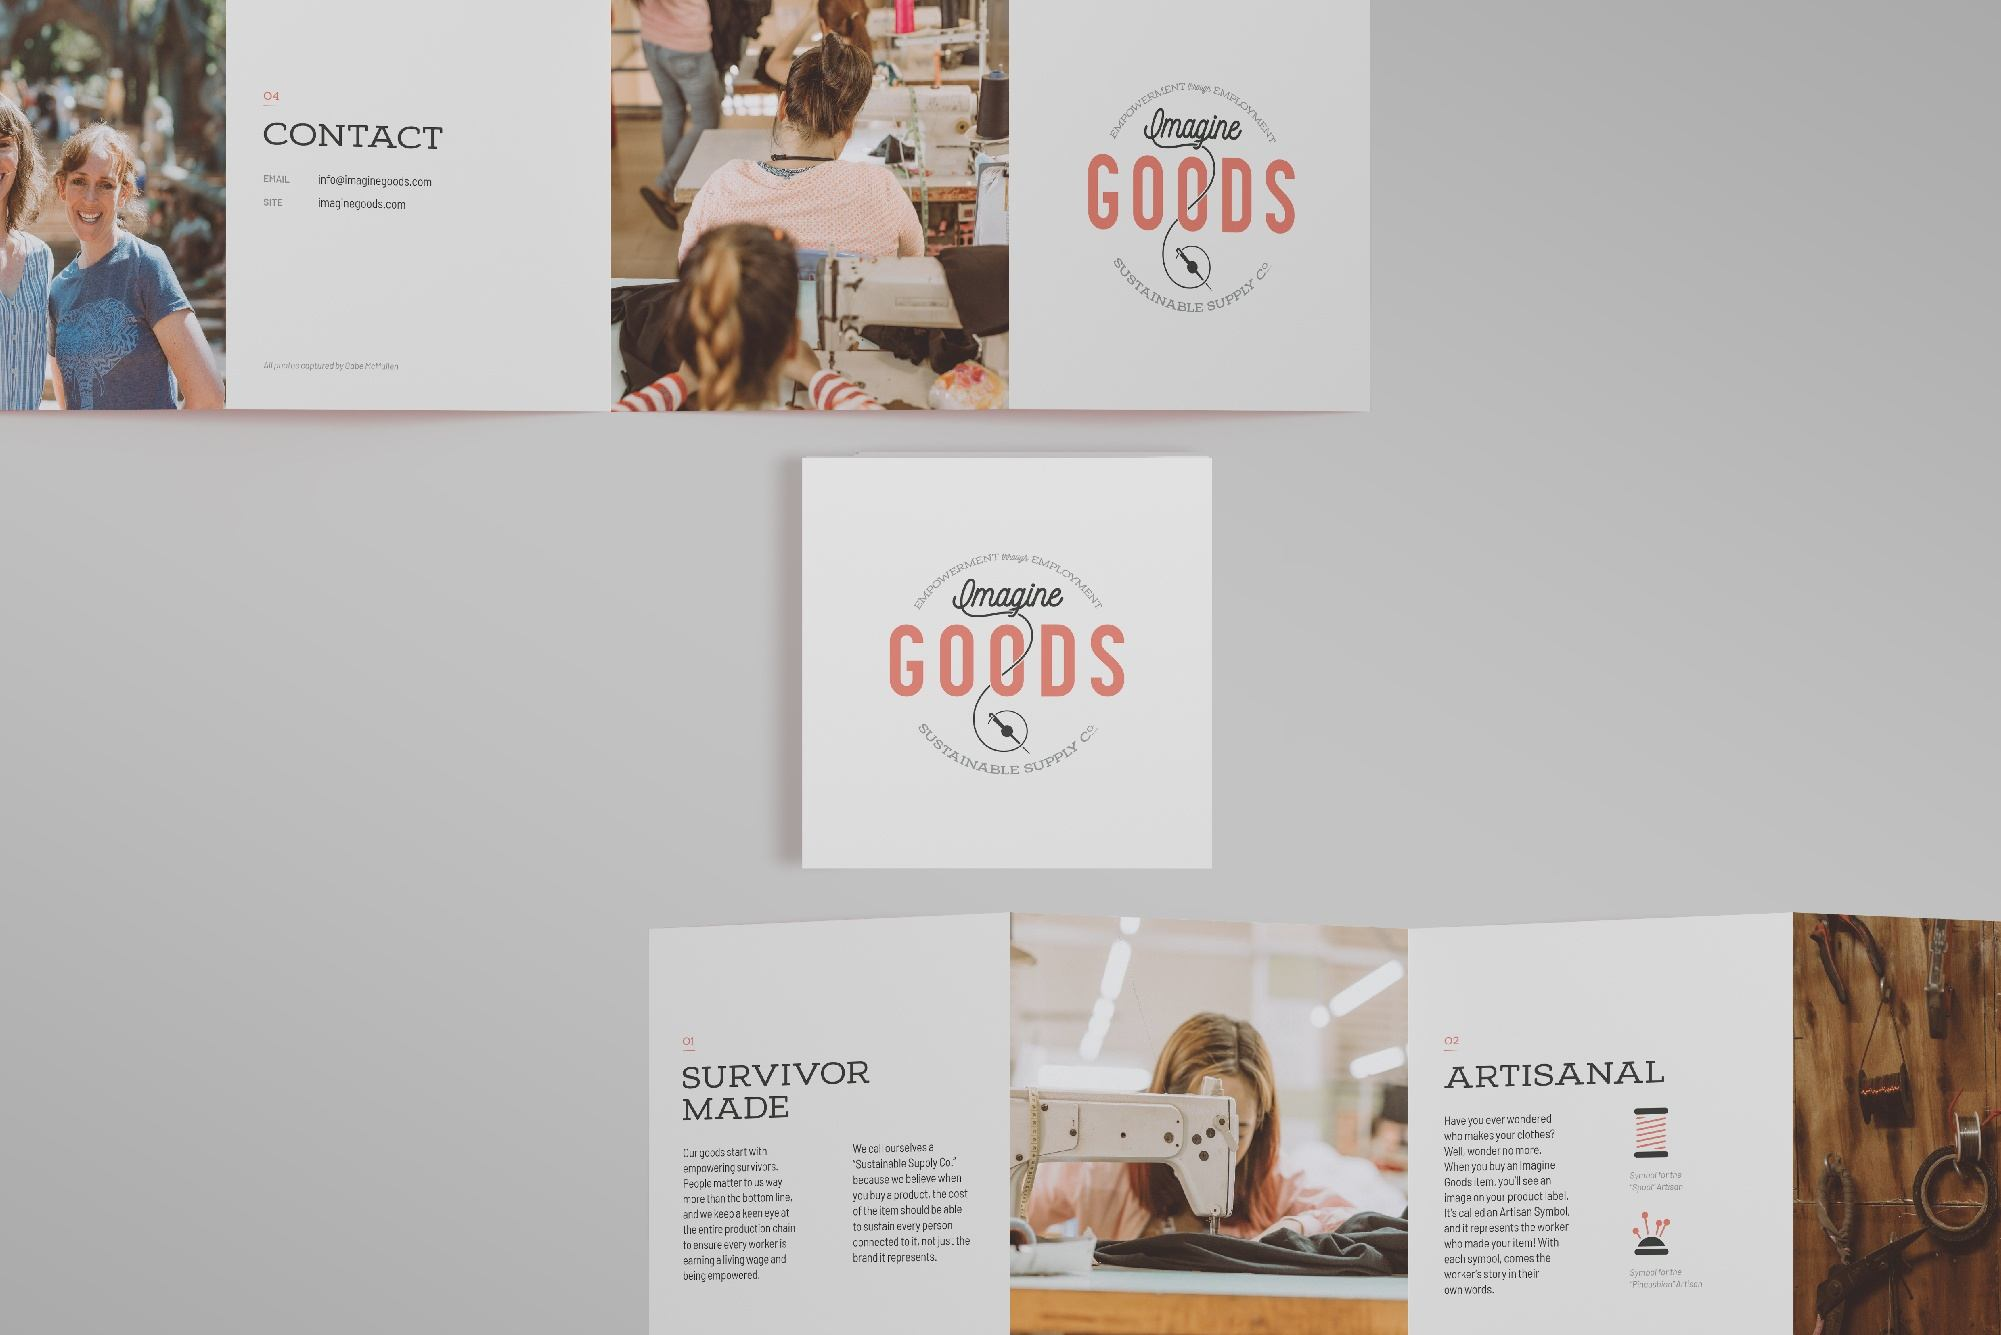 /assets/imaginegoods/g3_website_project_imaginegoods_booklet.jpg